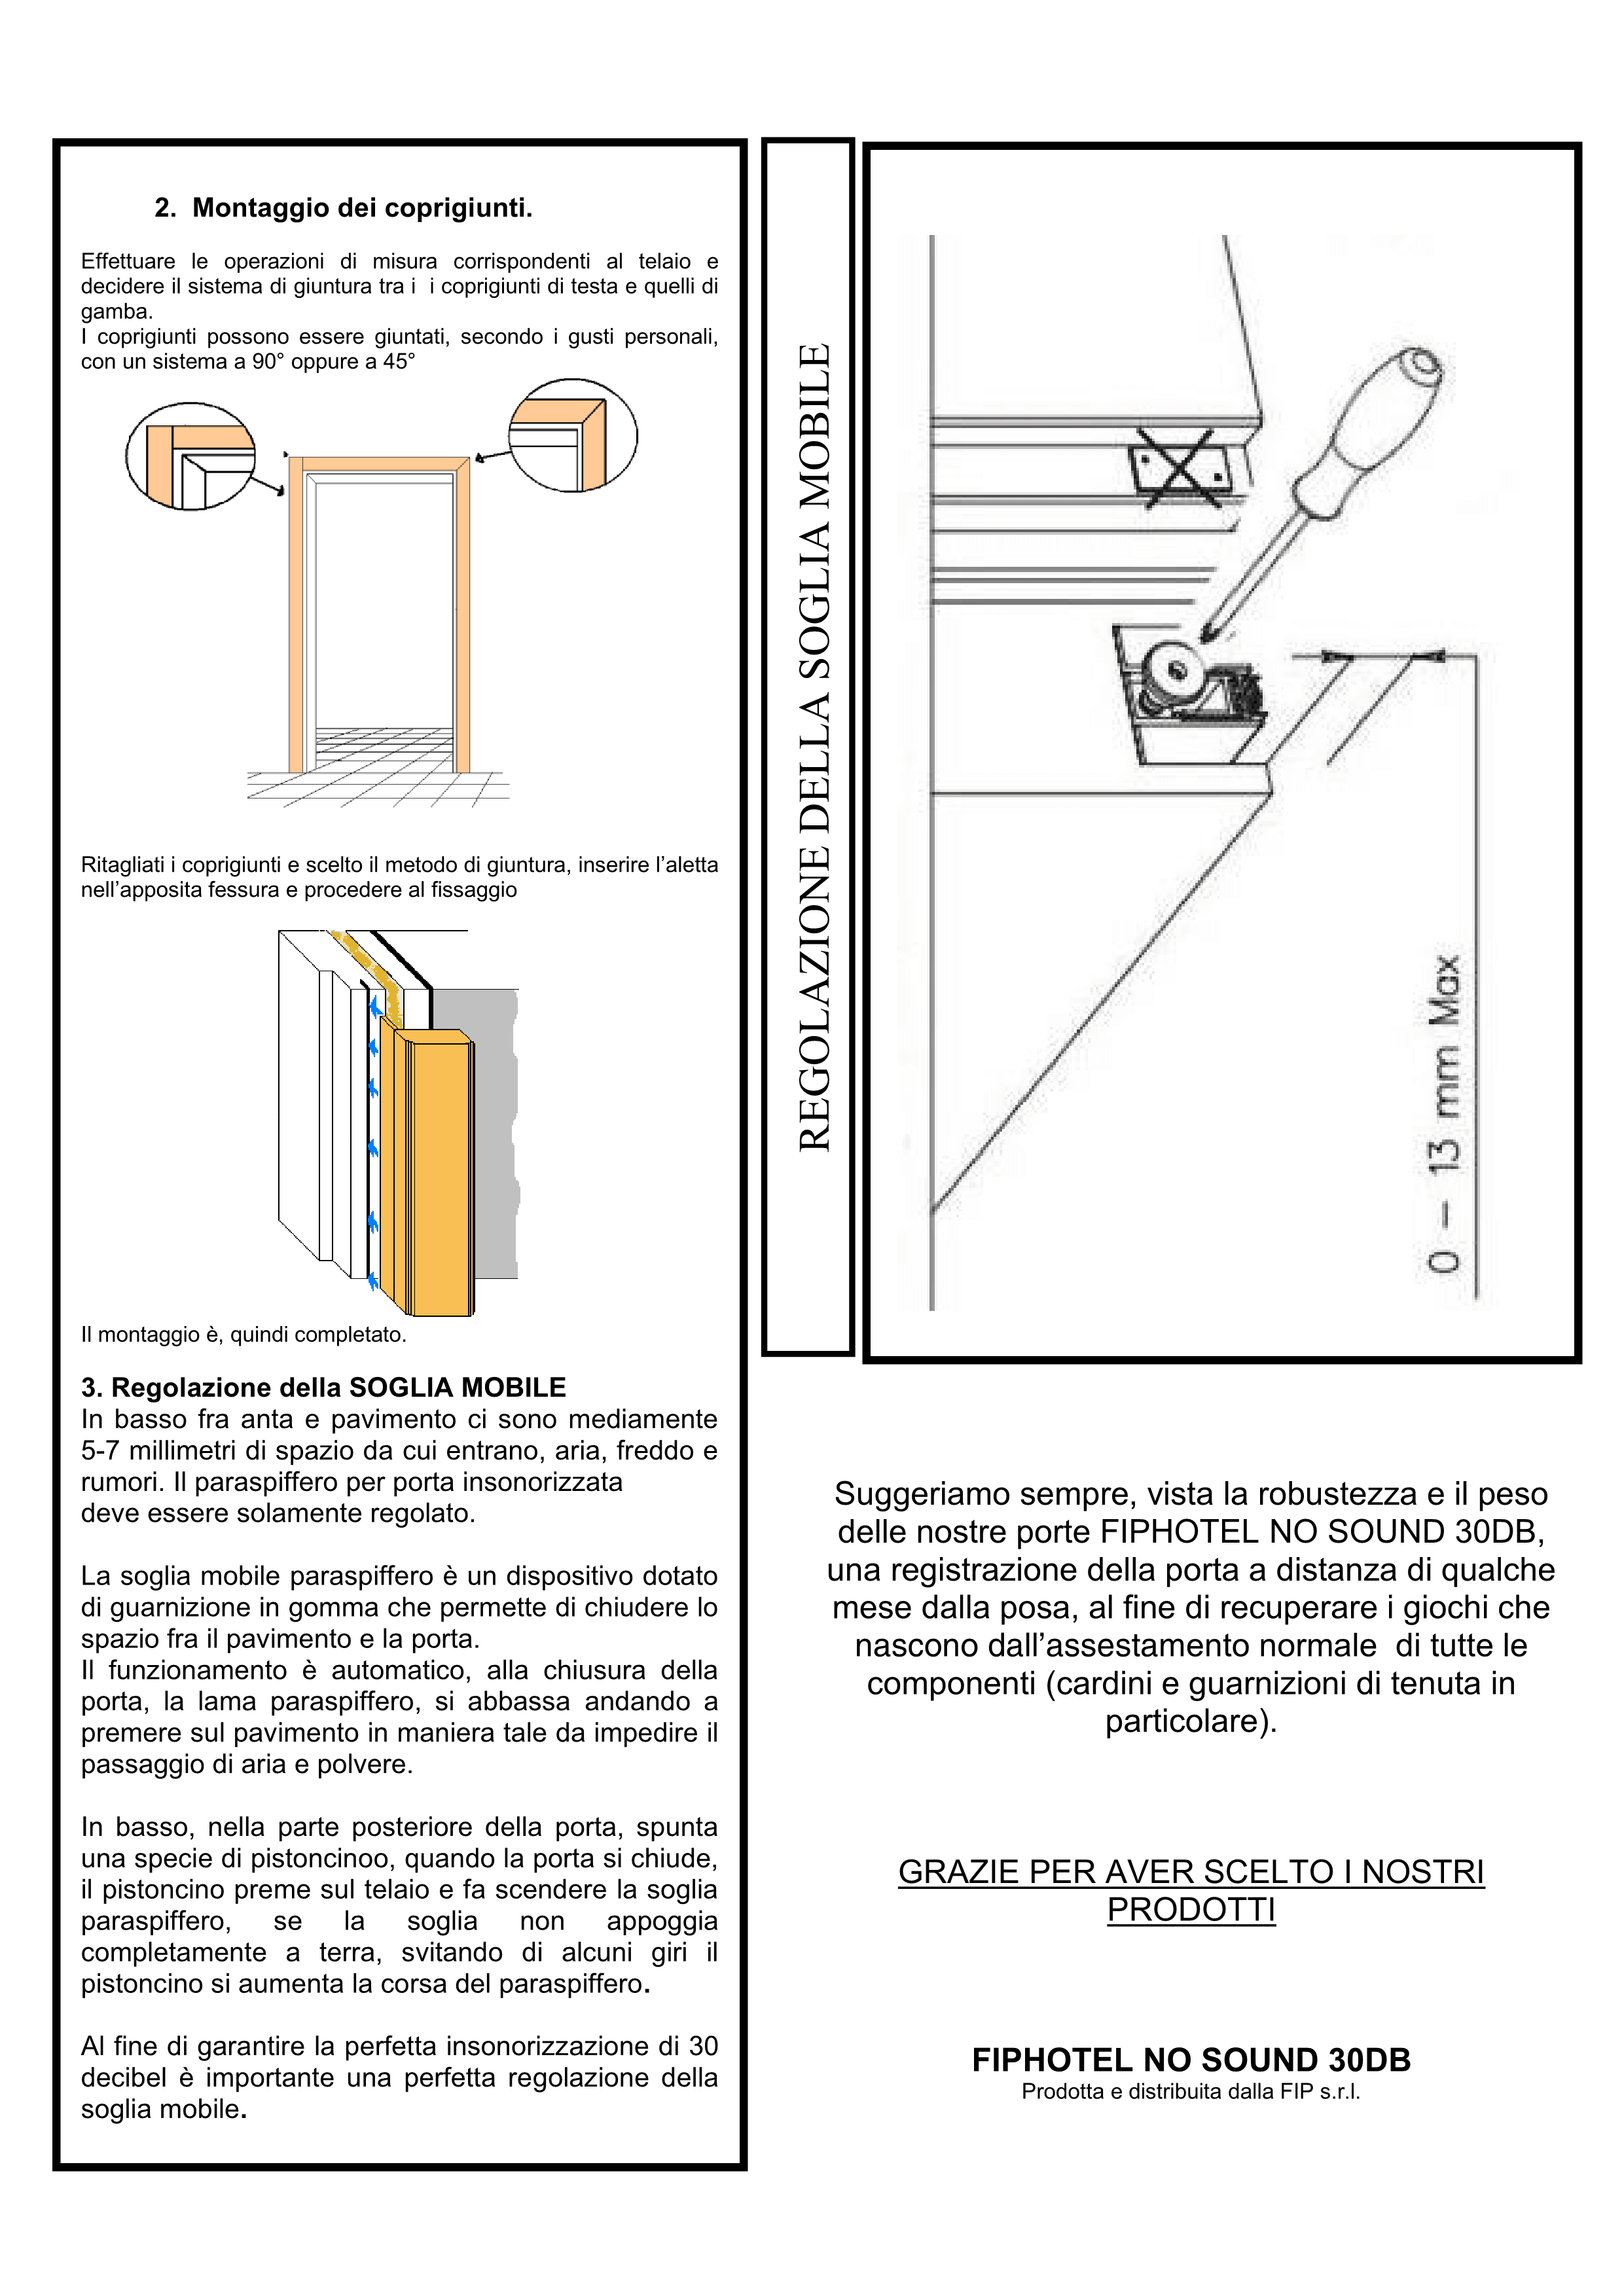 REI 45 door assembly instructions